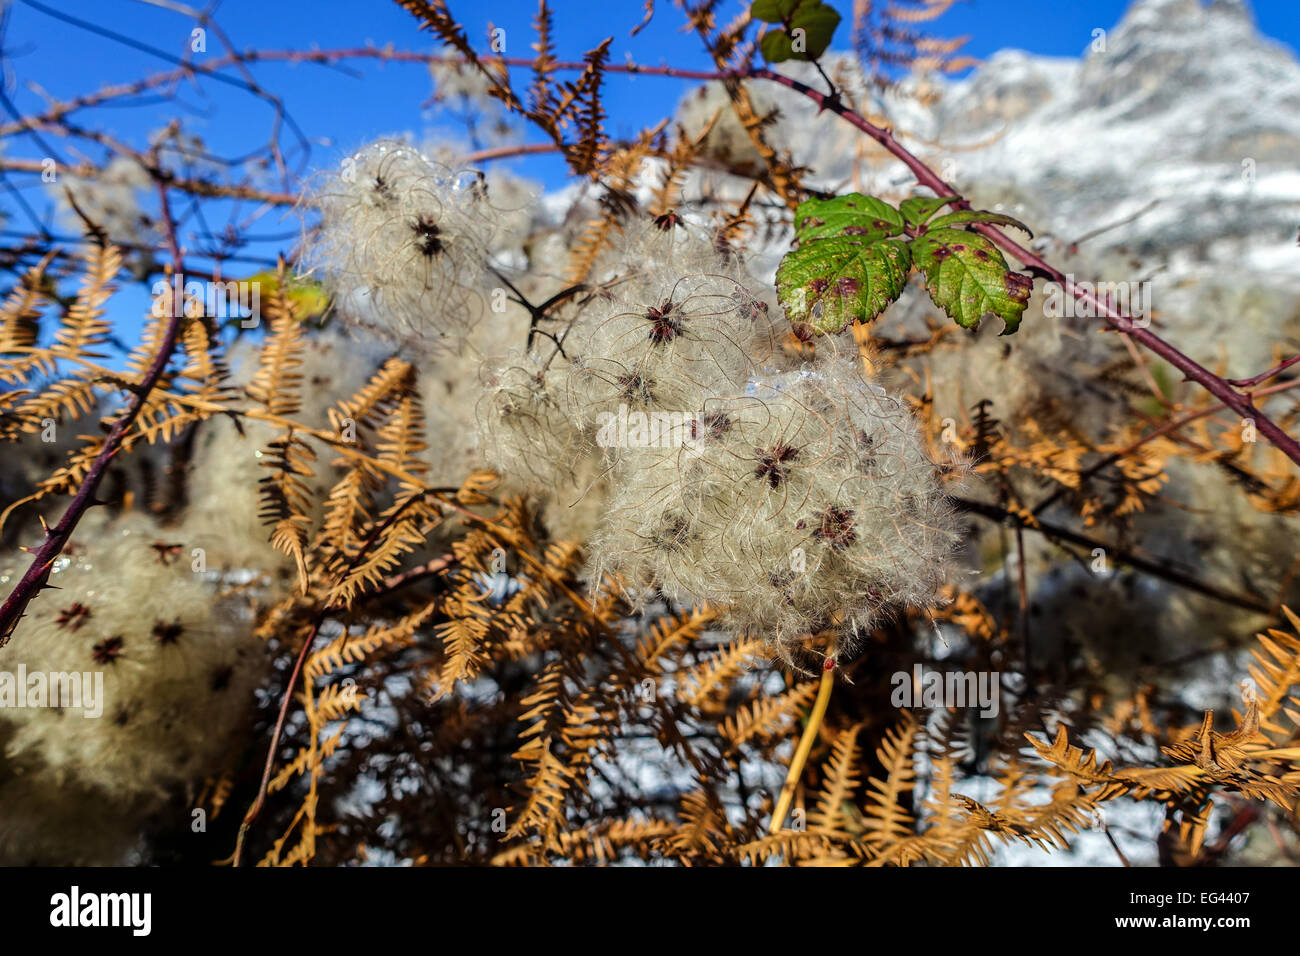 Seeds of Clematis vitalba, Old man's beard, Traveller's Joy, Ranunculaceae family - Stock Image